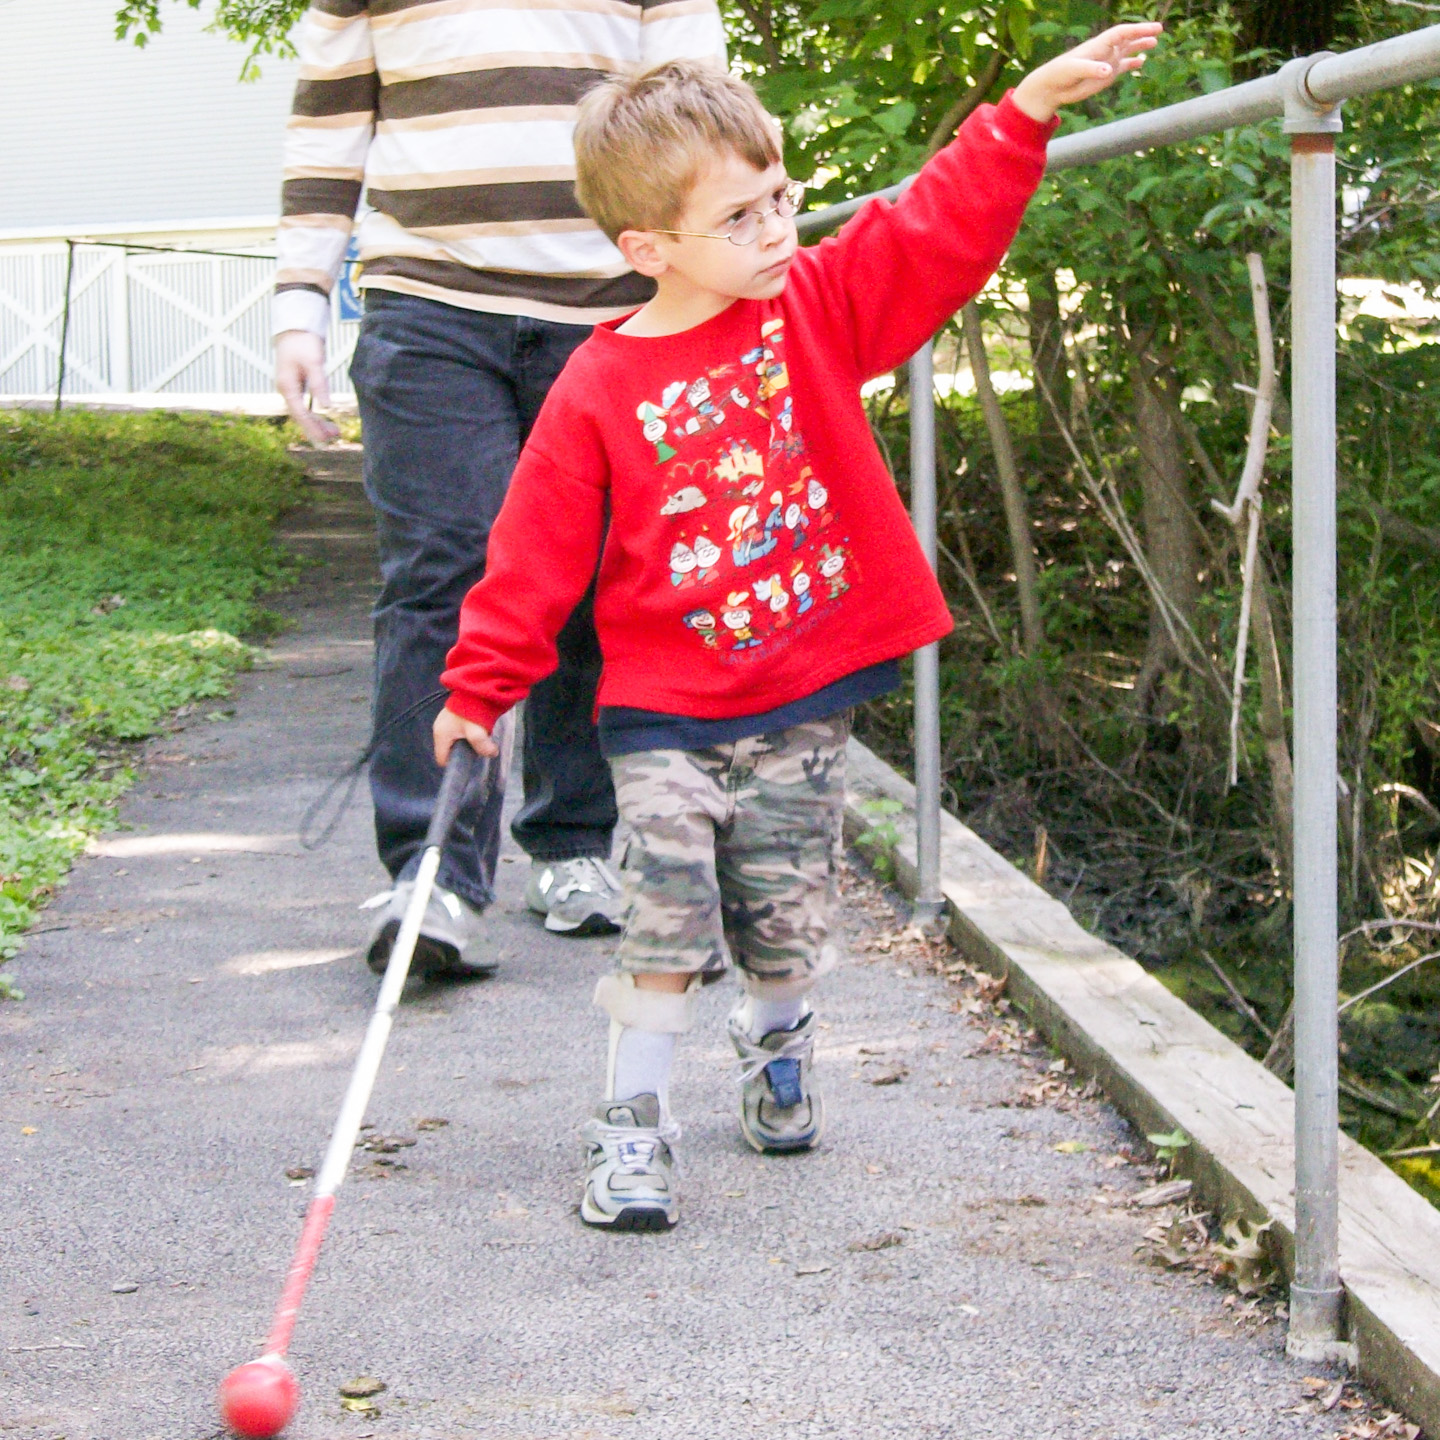 Image description: A young boy holding a cane walks down a street parallel to a fence.